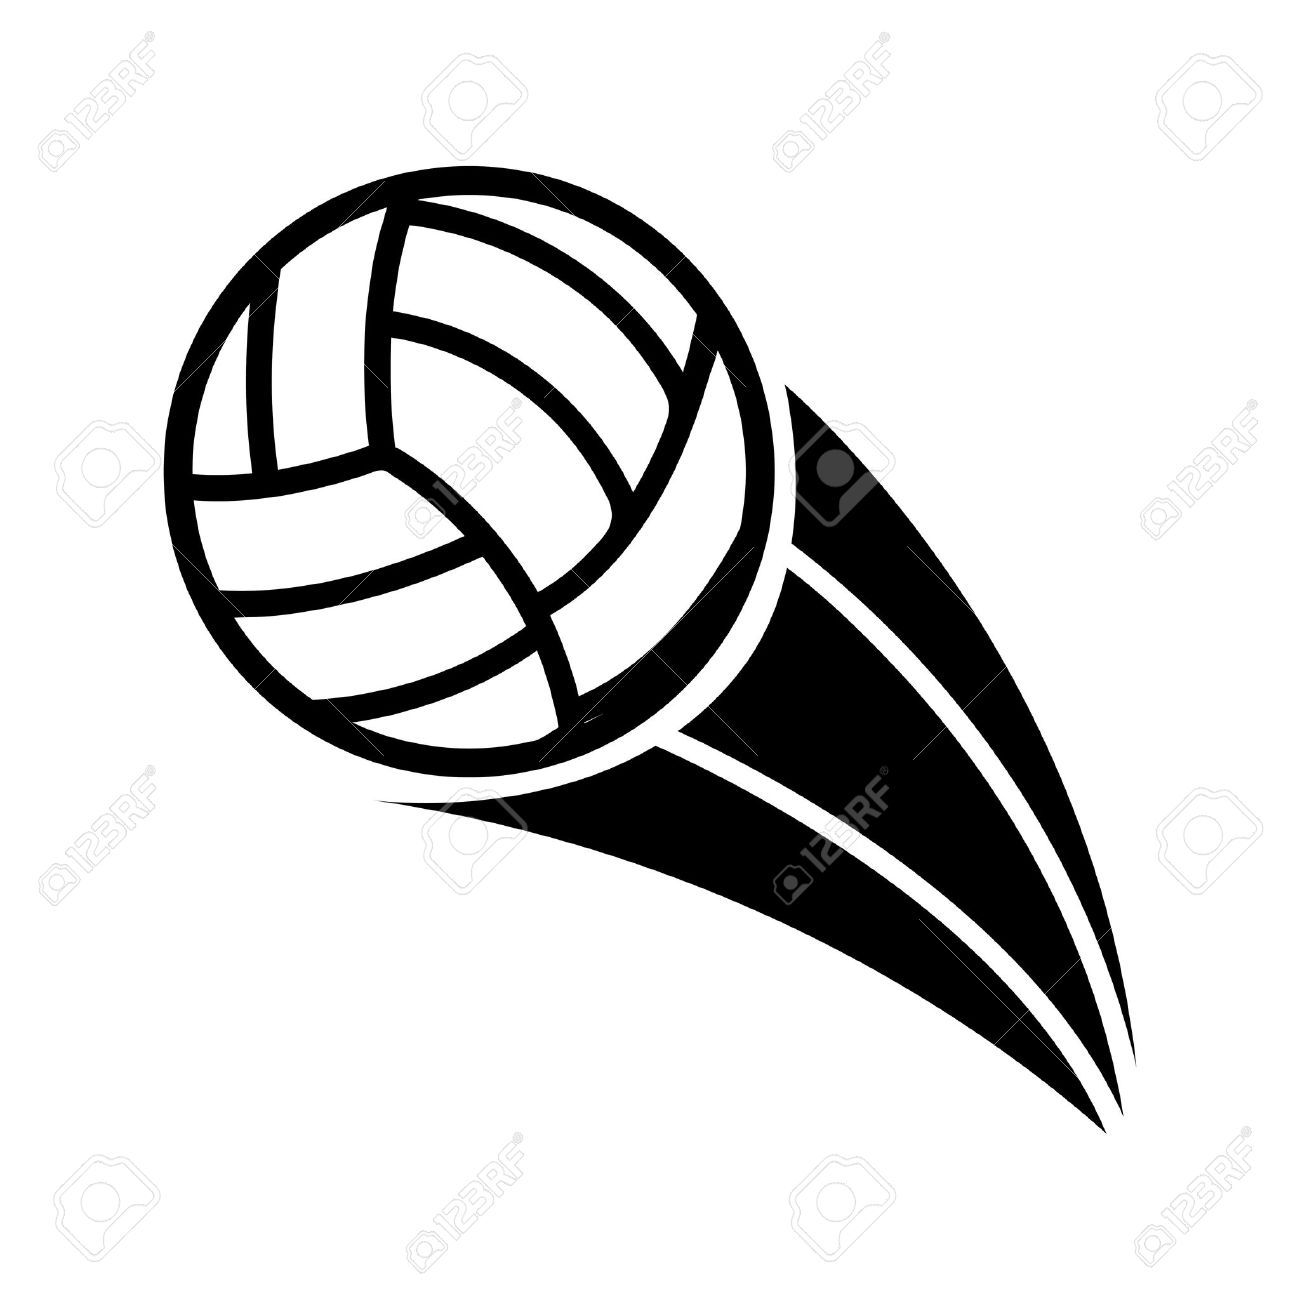 Flying volleyball clipart jpg royalty free download Flying volleyball clipart 1 » Clipart Portal jpg royalty free download